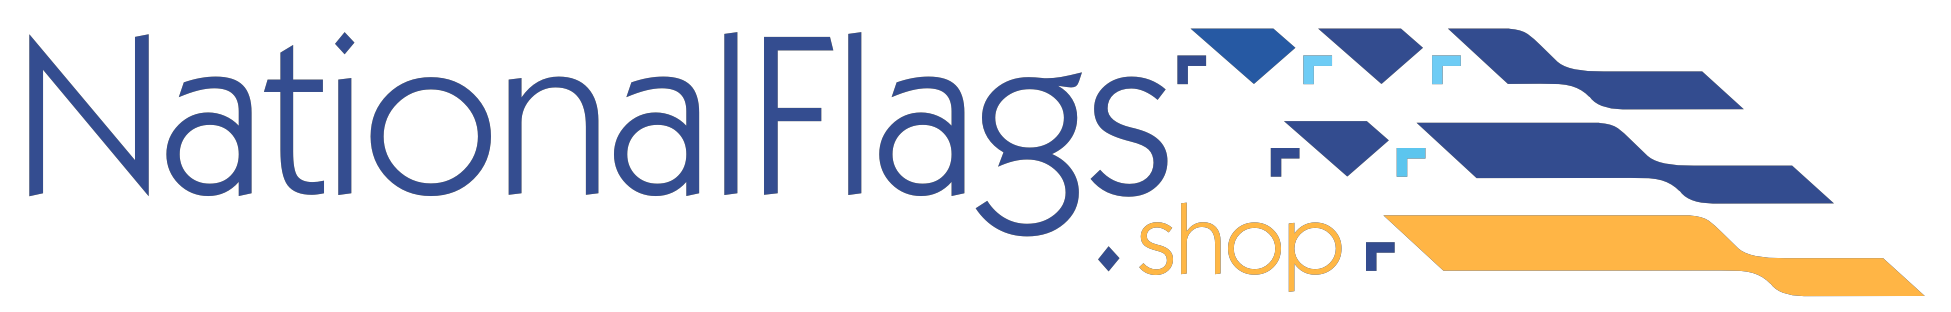 NationalFlags_logo